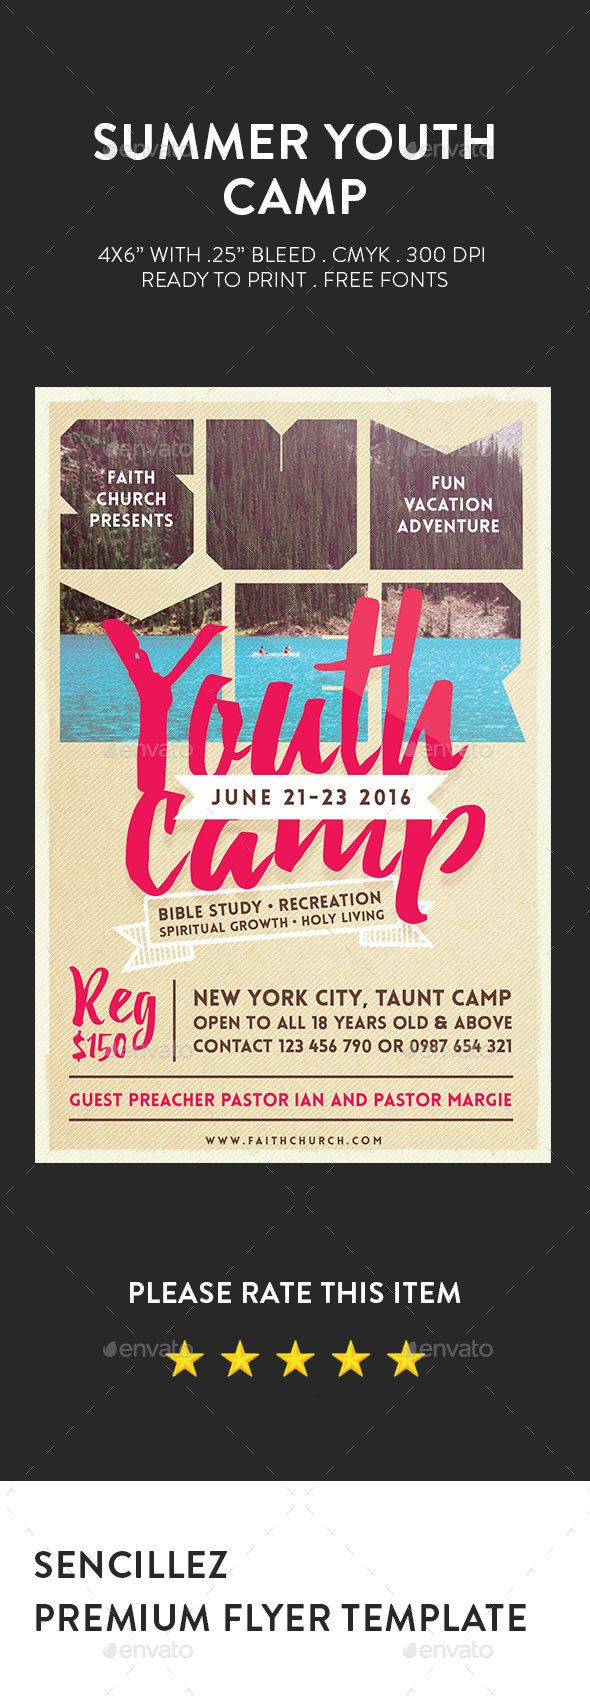 Summer Youth Camp Flyer Summer Youth Camp Flyer best suited for church camp, cam...